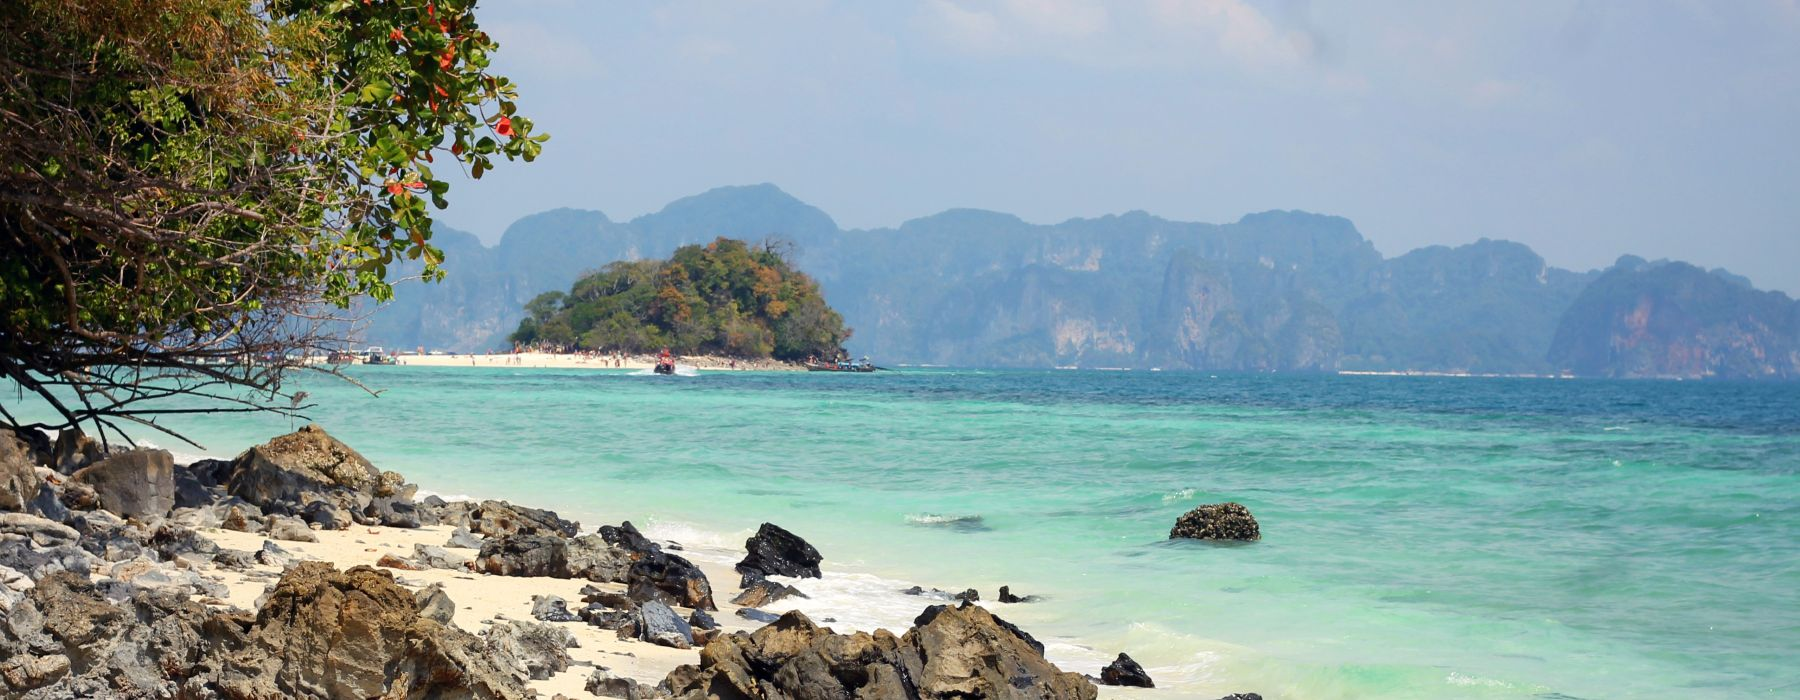 pachet turistic Thailand island hopping cover